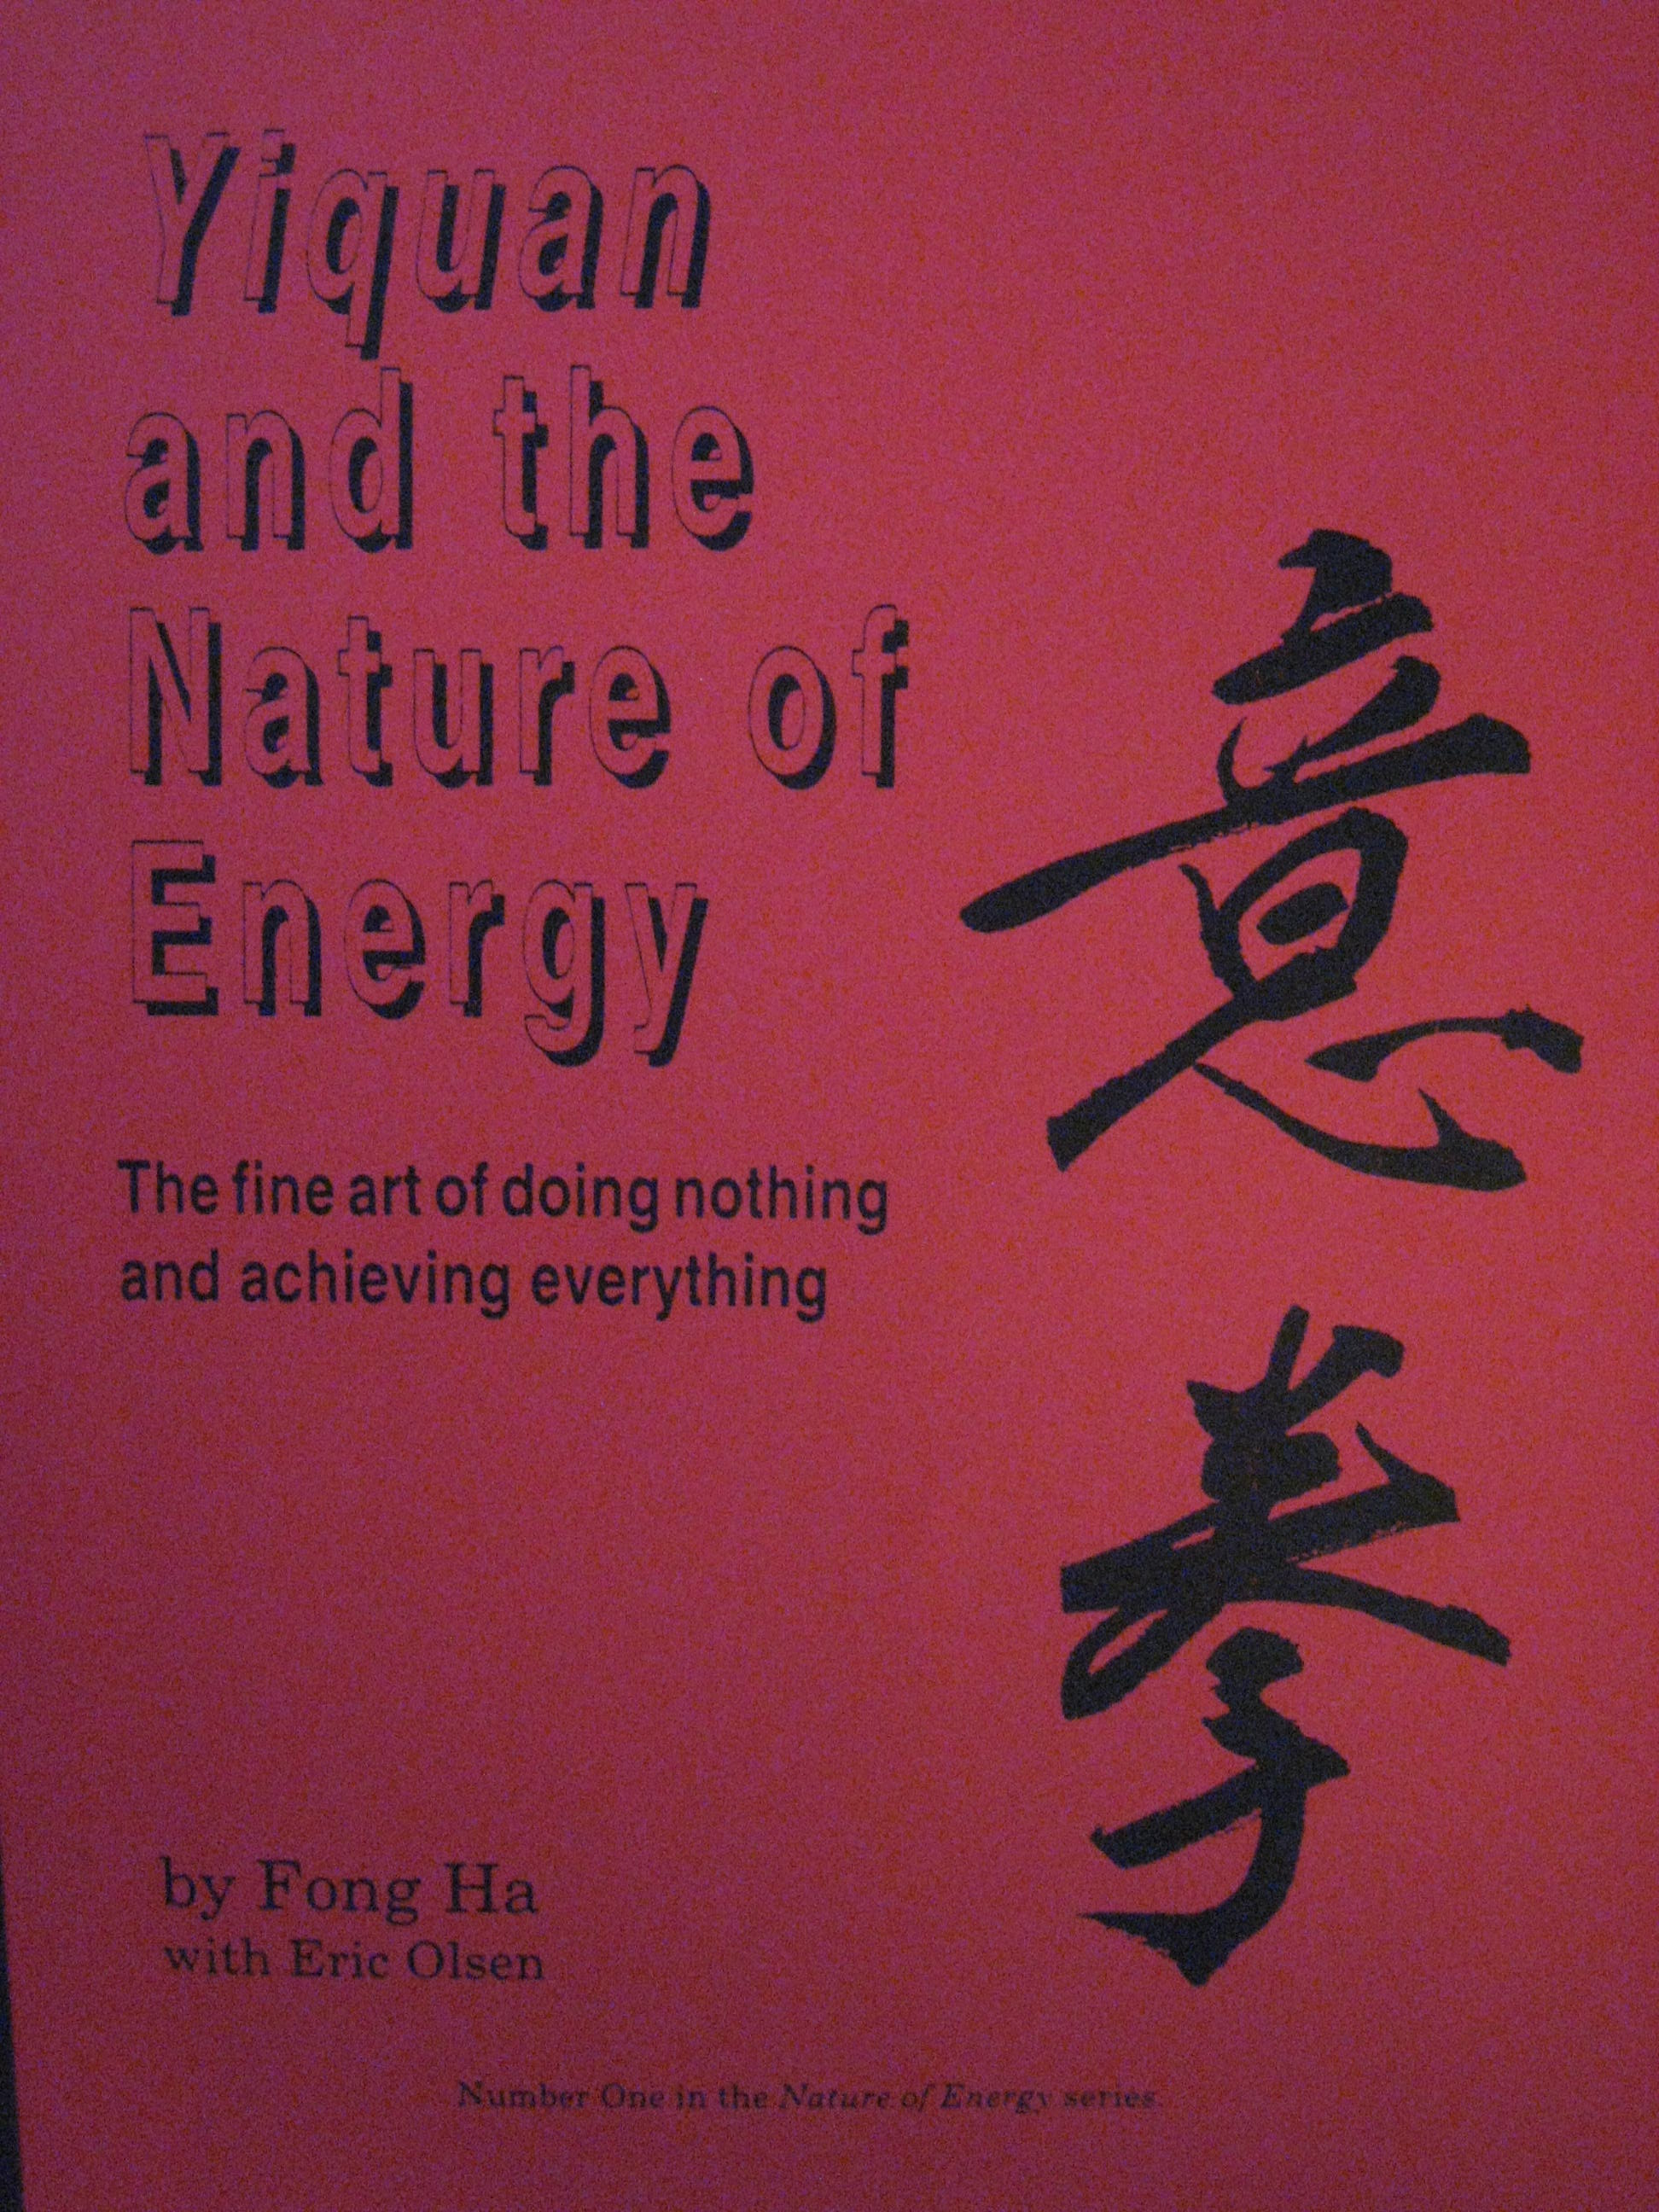 Yiquan and the Nature of Energy: The fine art of doing nothing and achieving everything